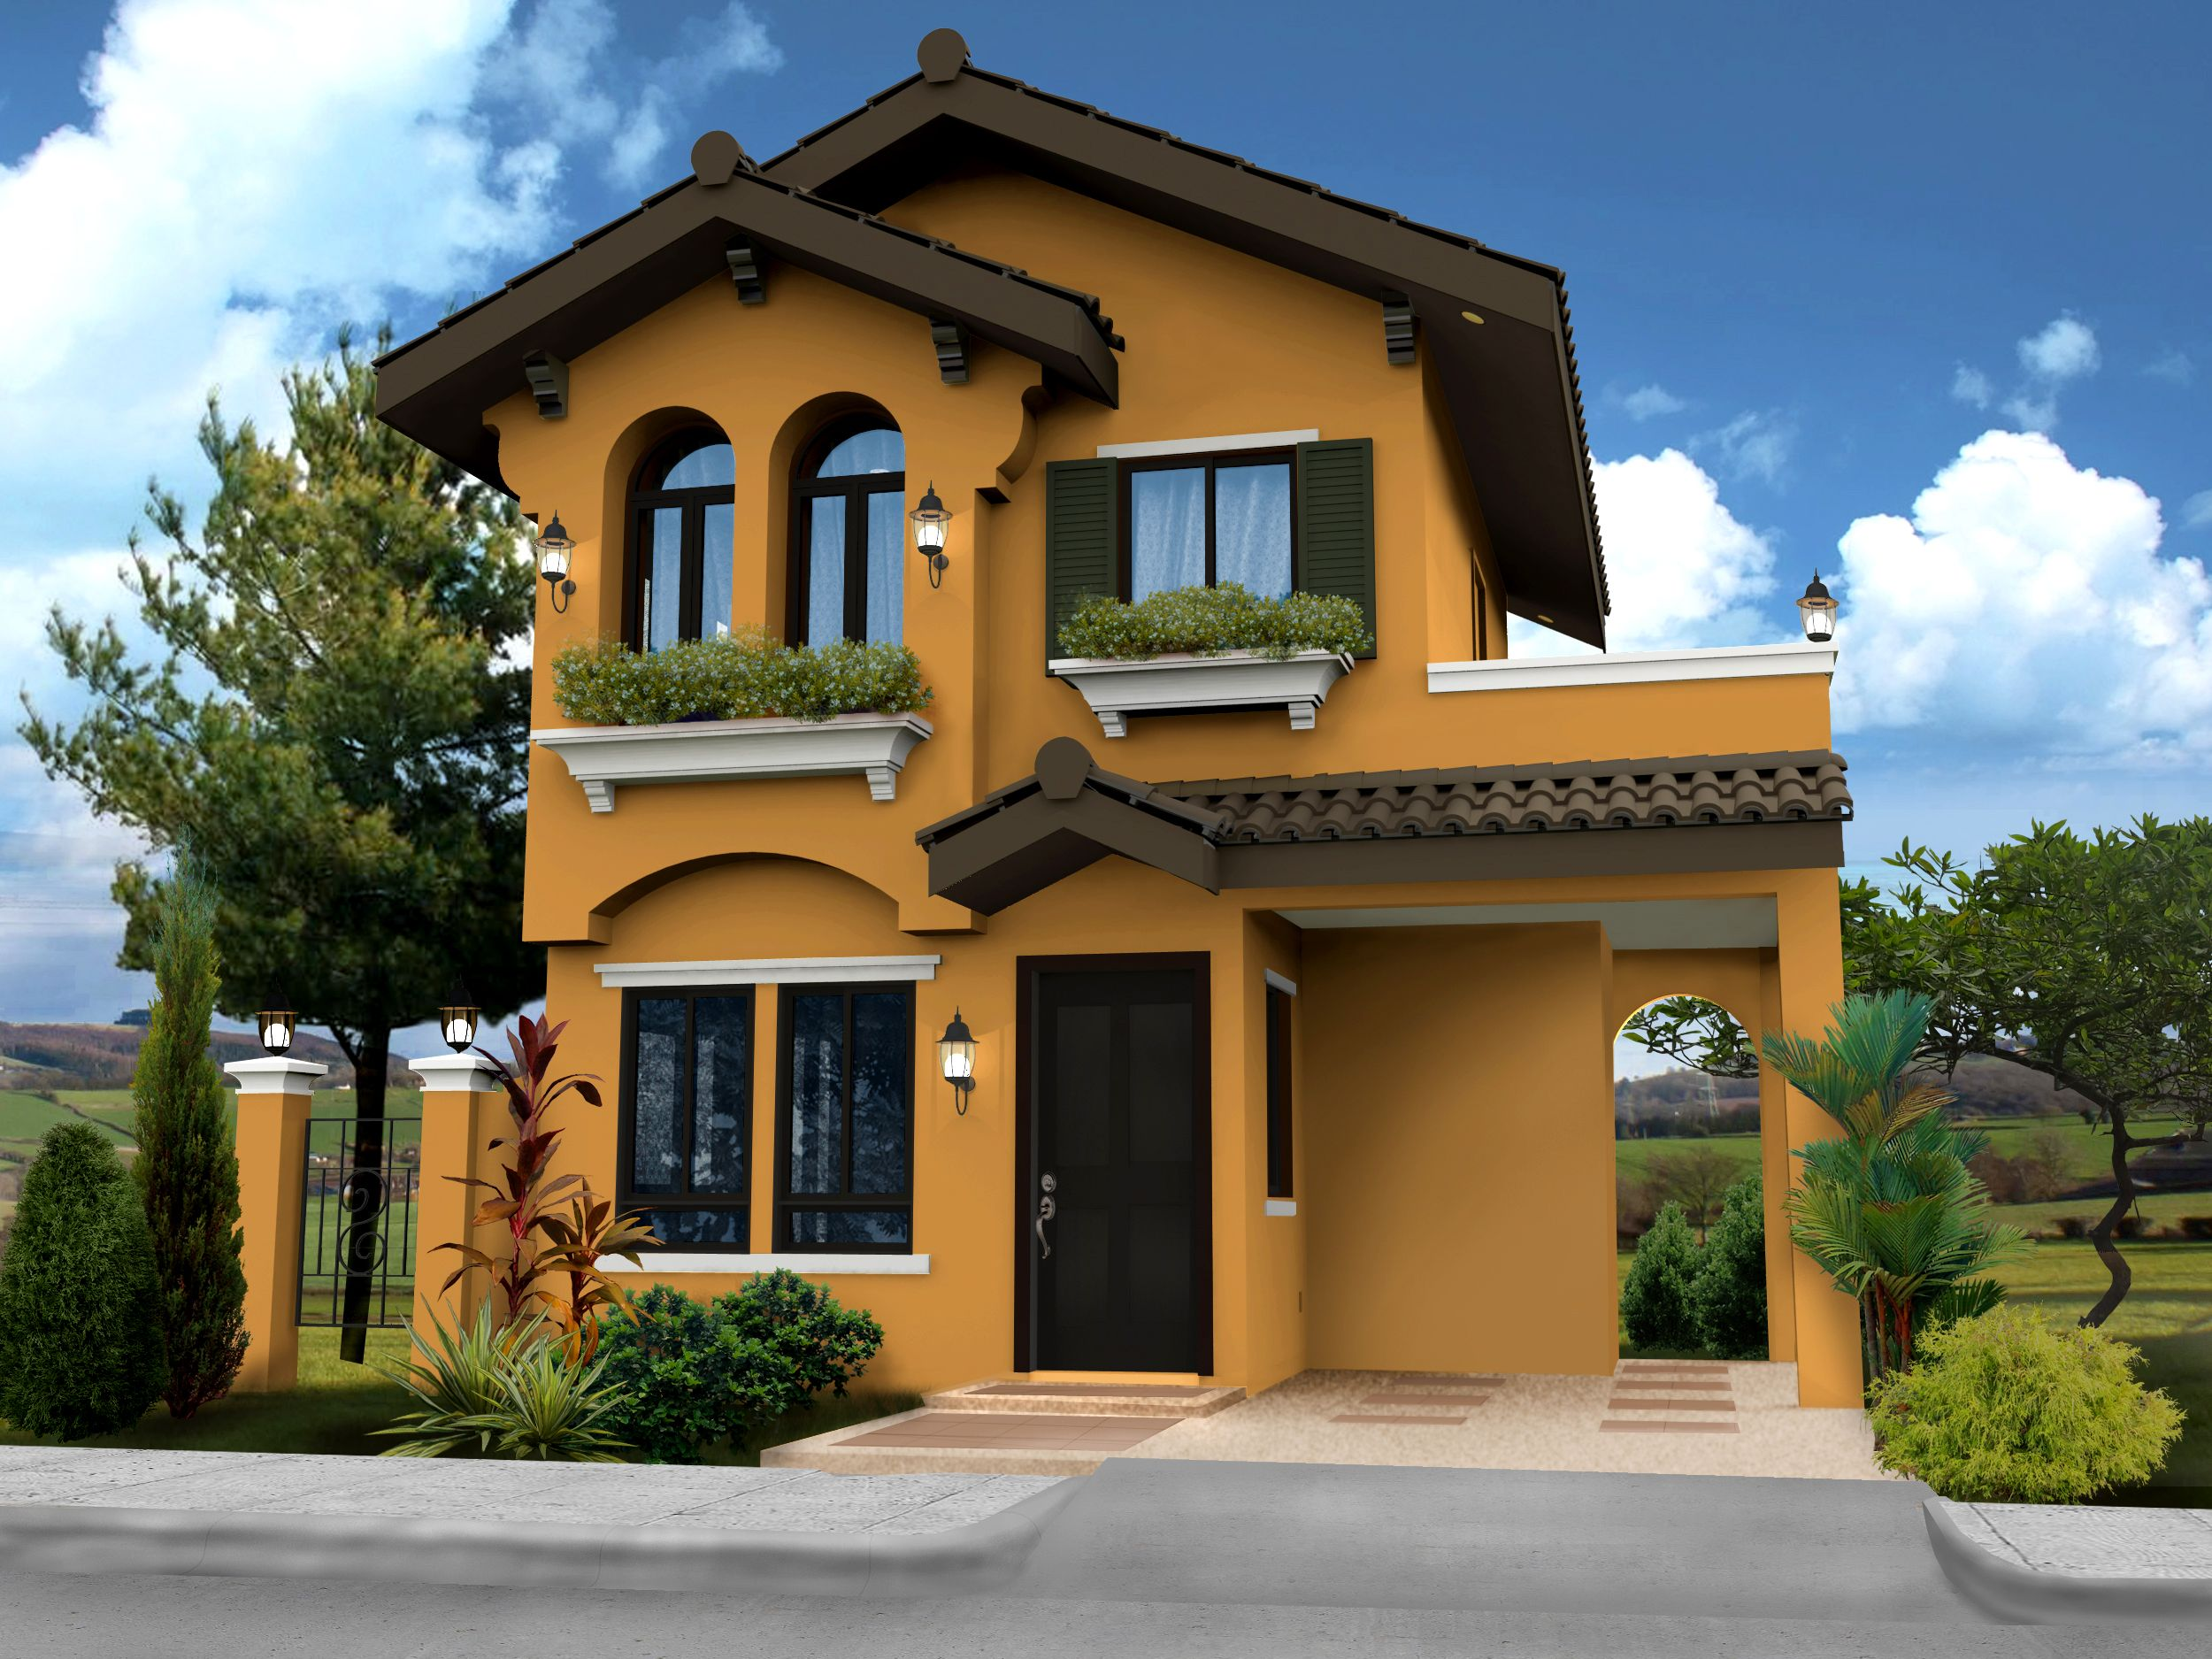 Modern 2 storey house designs philippines hiqra pinterest for House models in the philippines